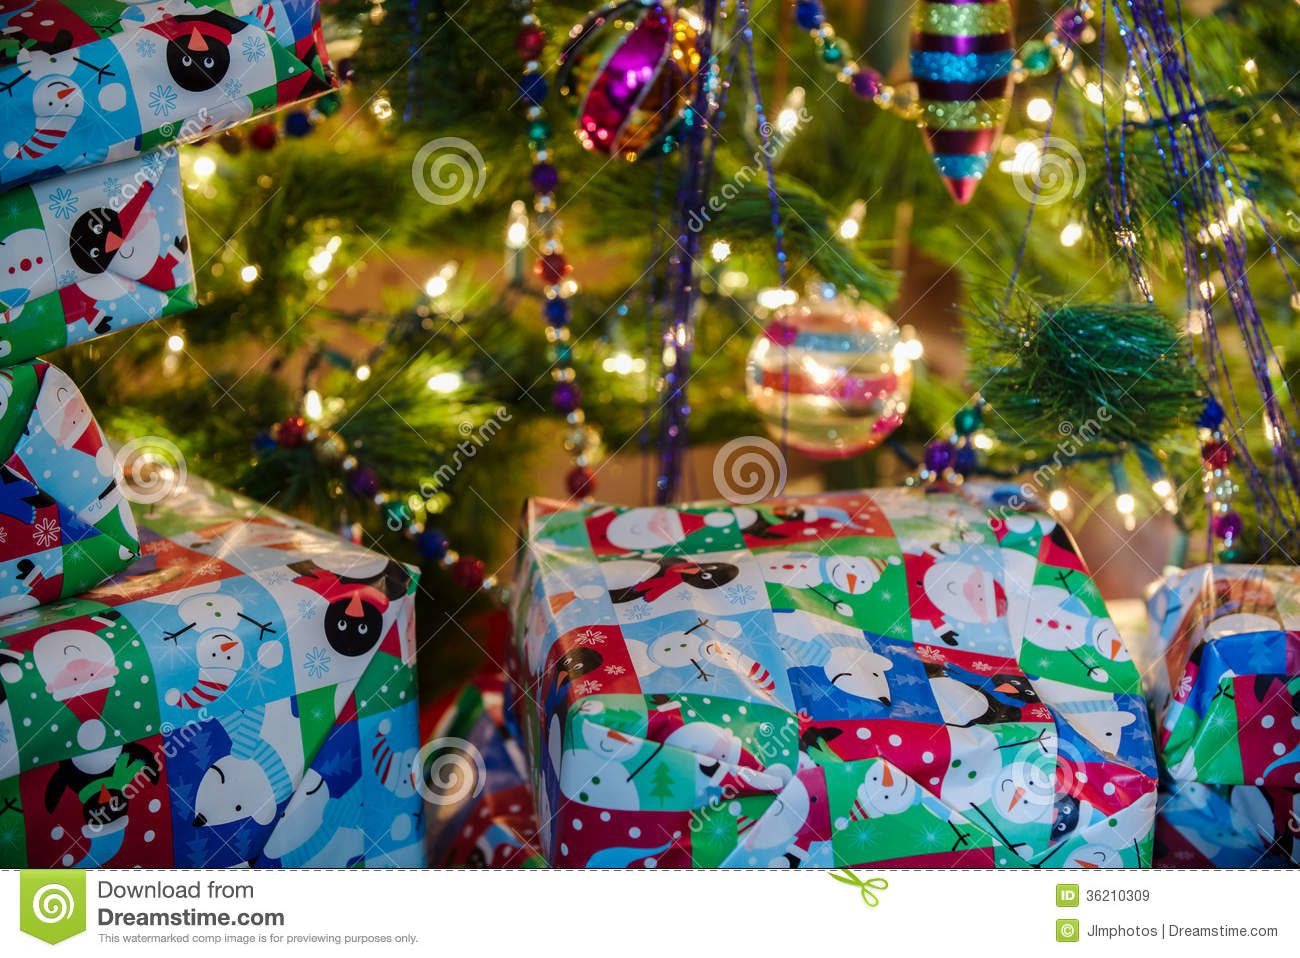 How to Get Organized for the Holidays in 6 Steps ... |Wrapped Christmas Presents Under The Tree